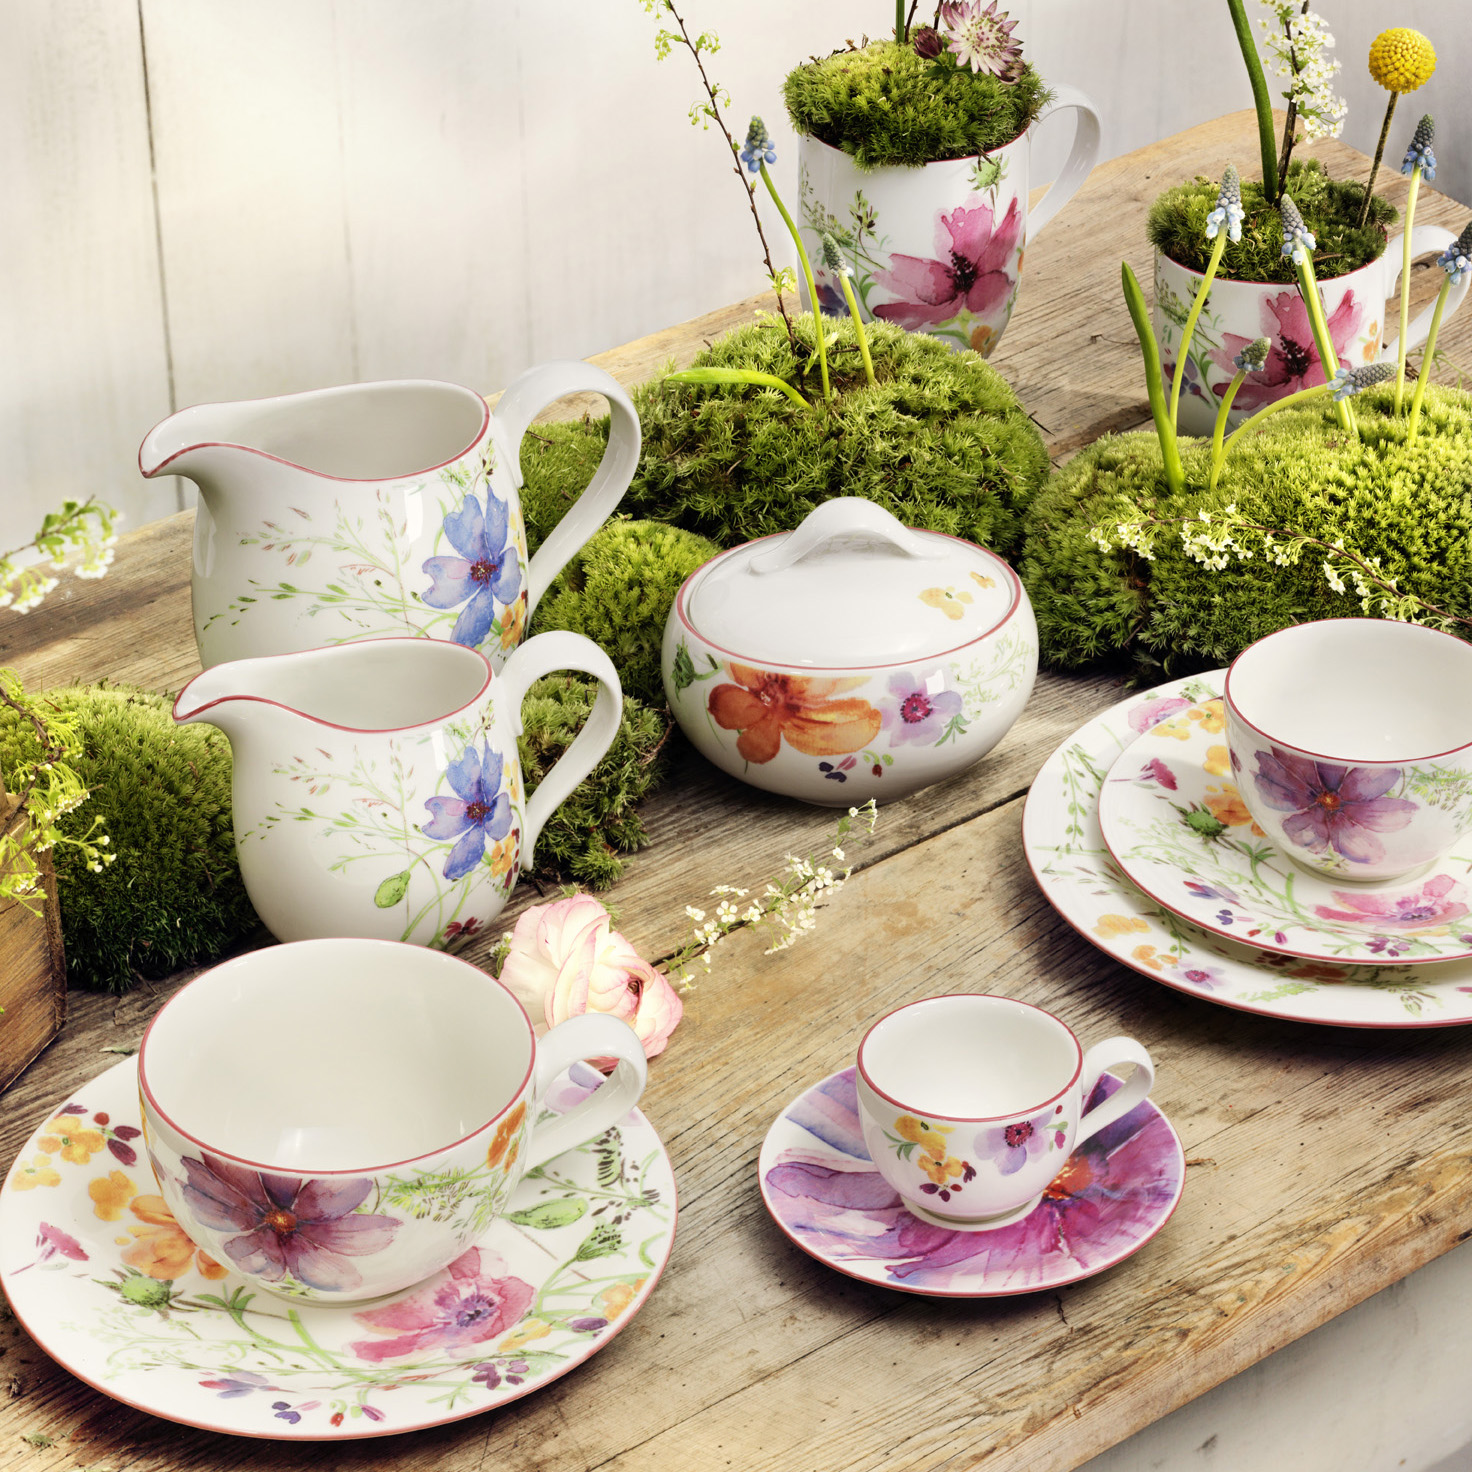 Villeroy And Boch Good Life 2 Go Villeroy And Boch Mairefleur Collection